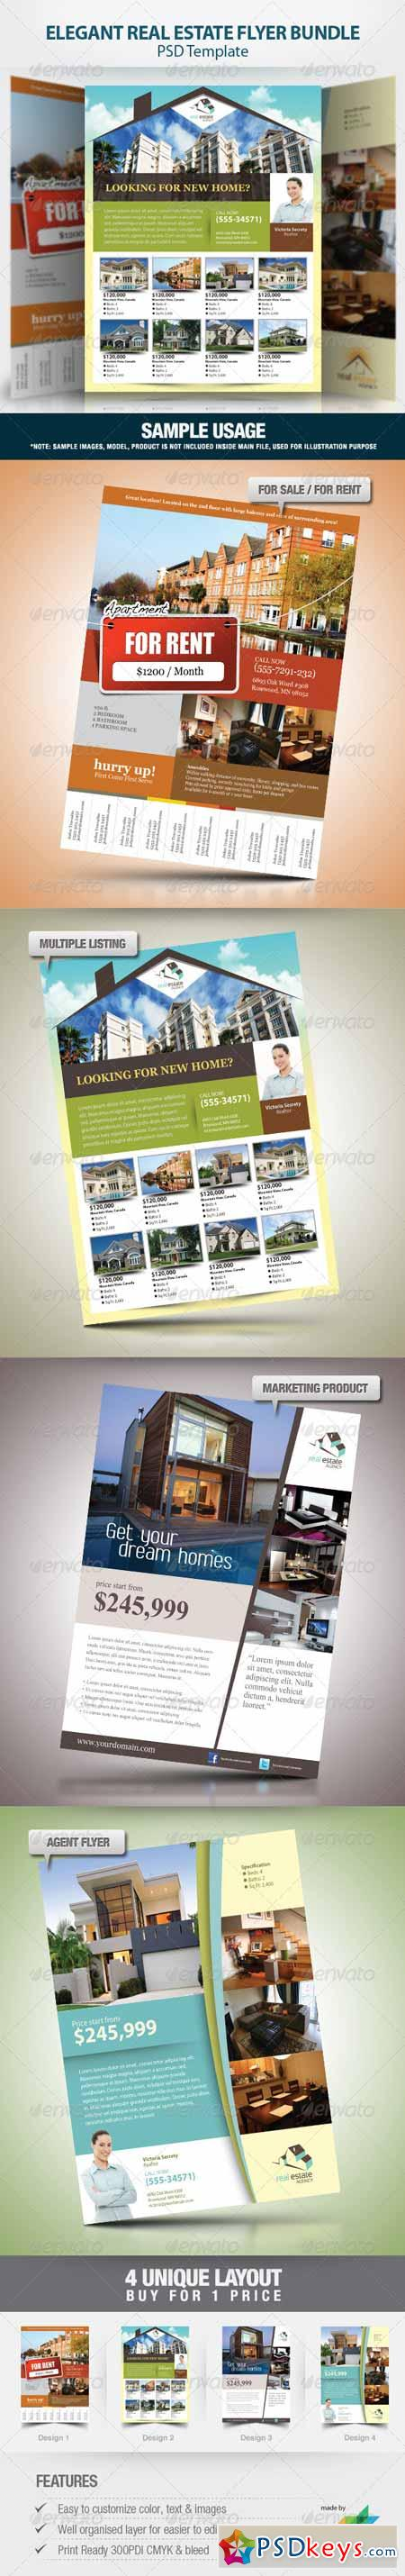 elegant real estate flyer set 716124 photoshop elegant real estate flyer set 716124